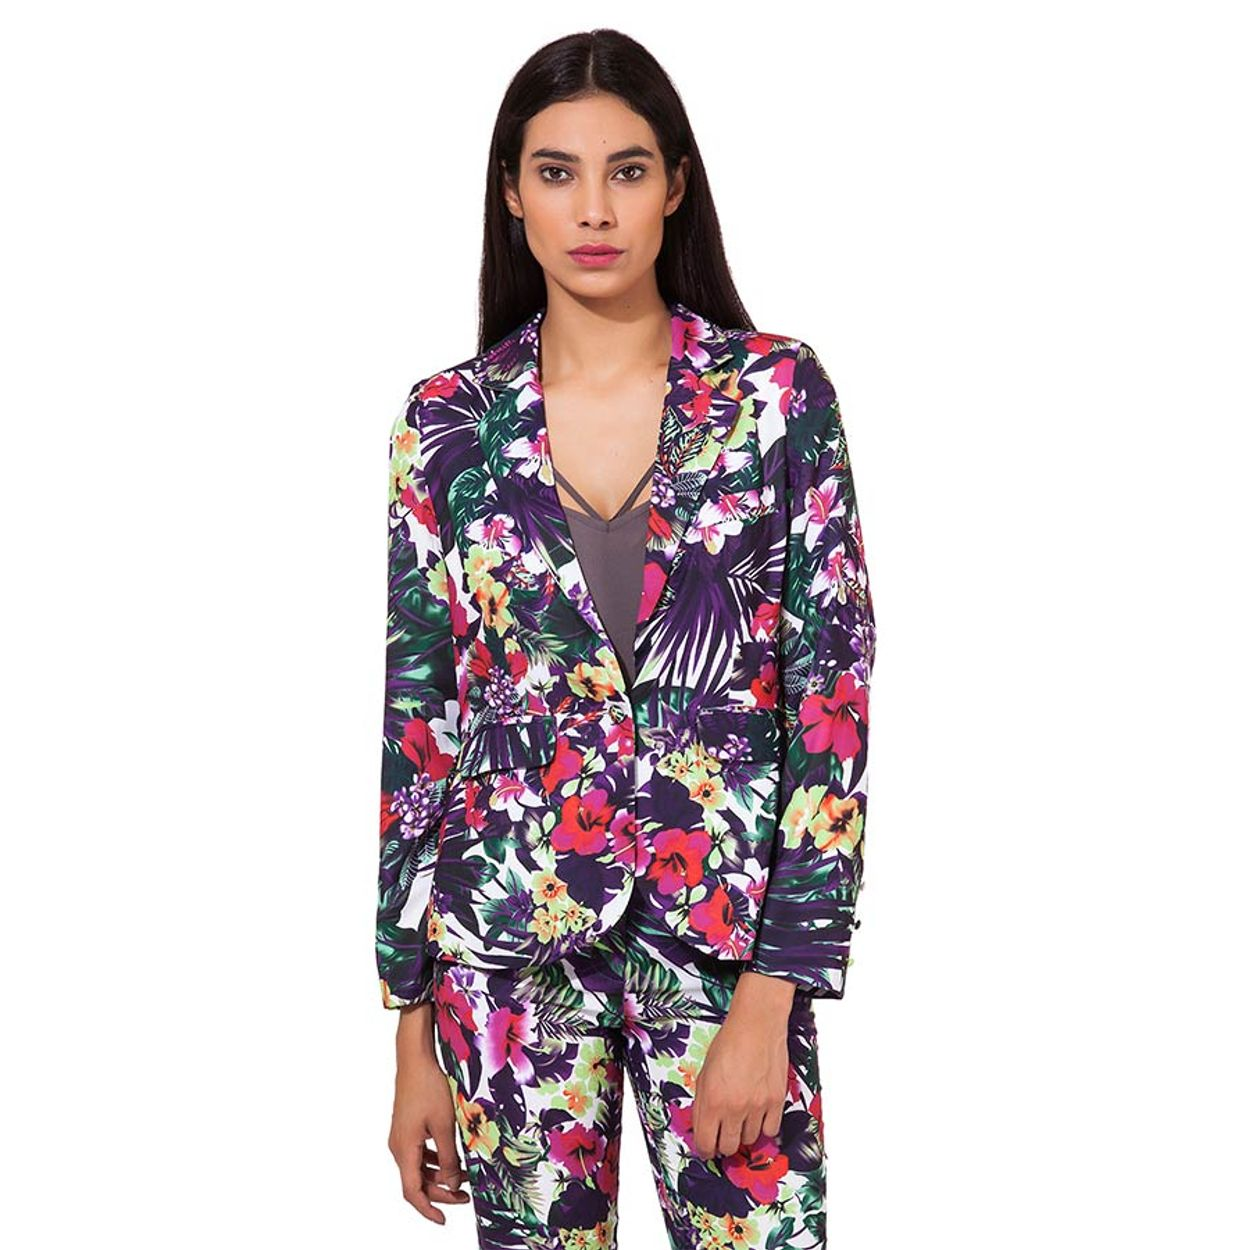 Elegant Jackets for Women. Looking for the perfect finishing touch for your Earn Rewards Points · % Off Boots · 60% Off Outerwear · Free Shipping to StoresTypes: Dresses, Tops, Jeans, Activewear, Sweaters, Jackets, Maternity.